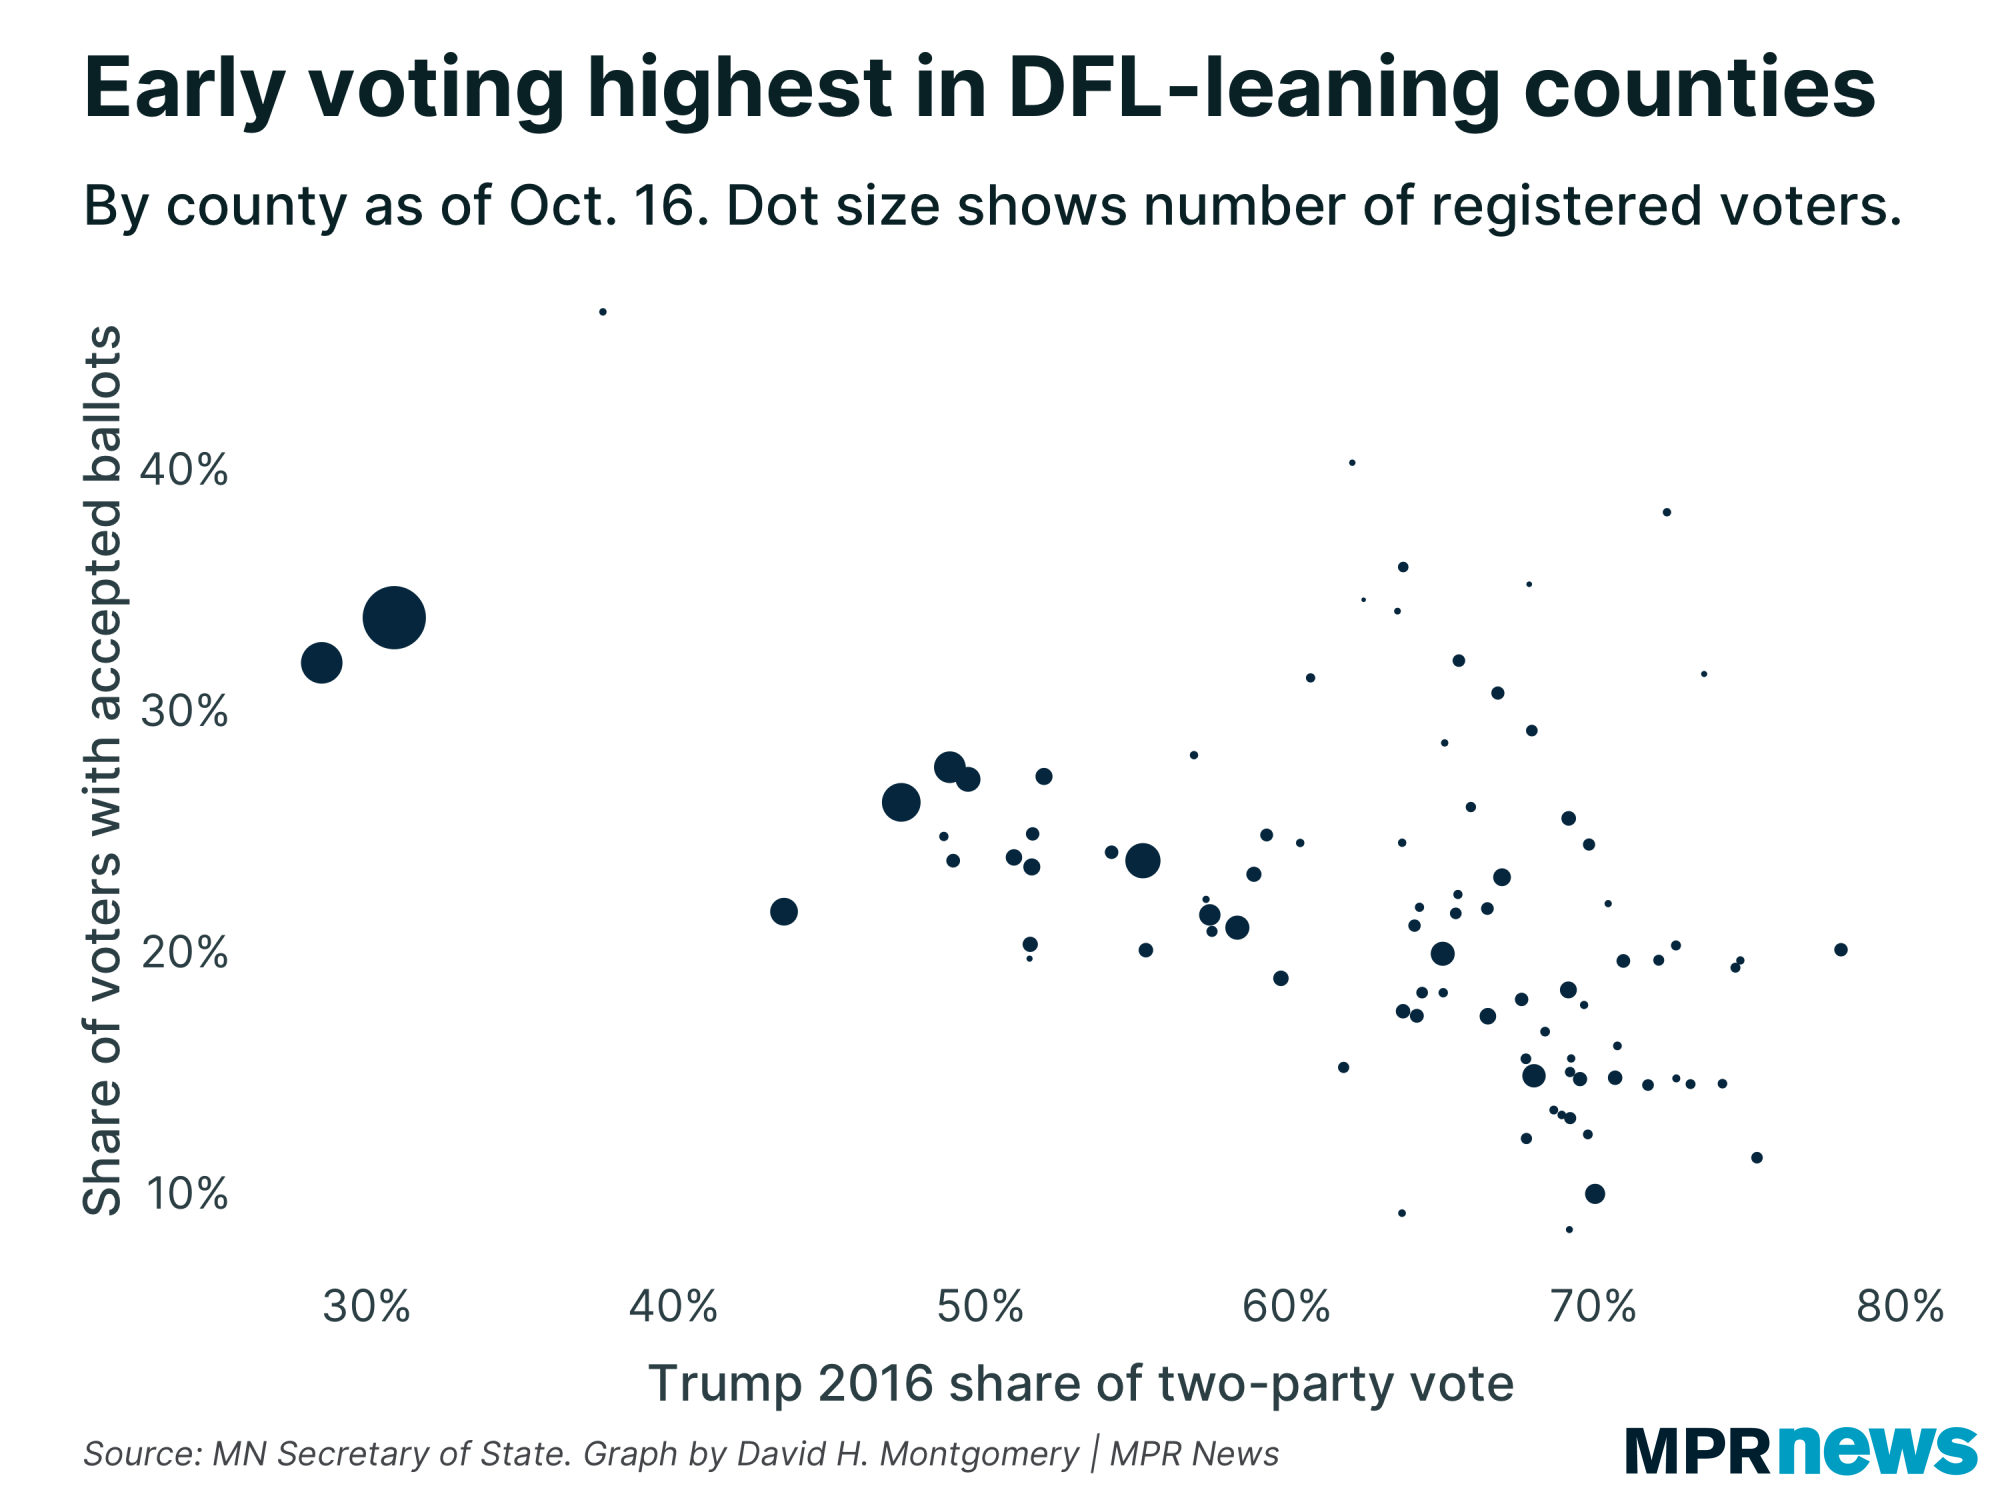 Early voting as of Oct. 16 by county, vs. Donald Trump's 2016 vote share